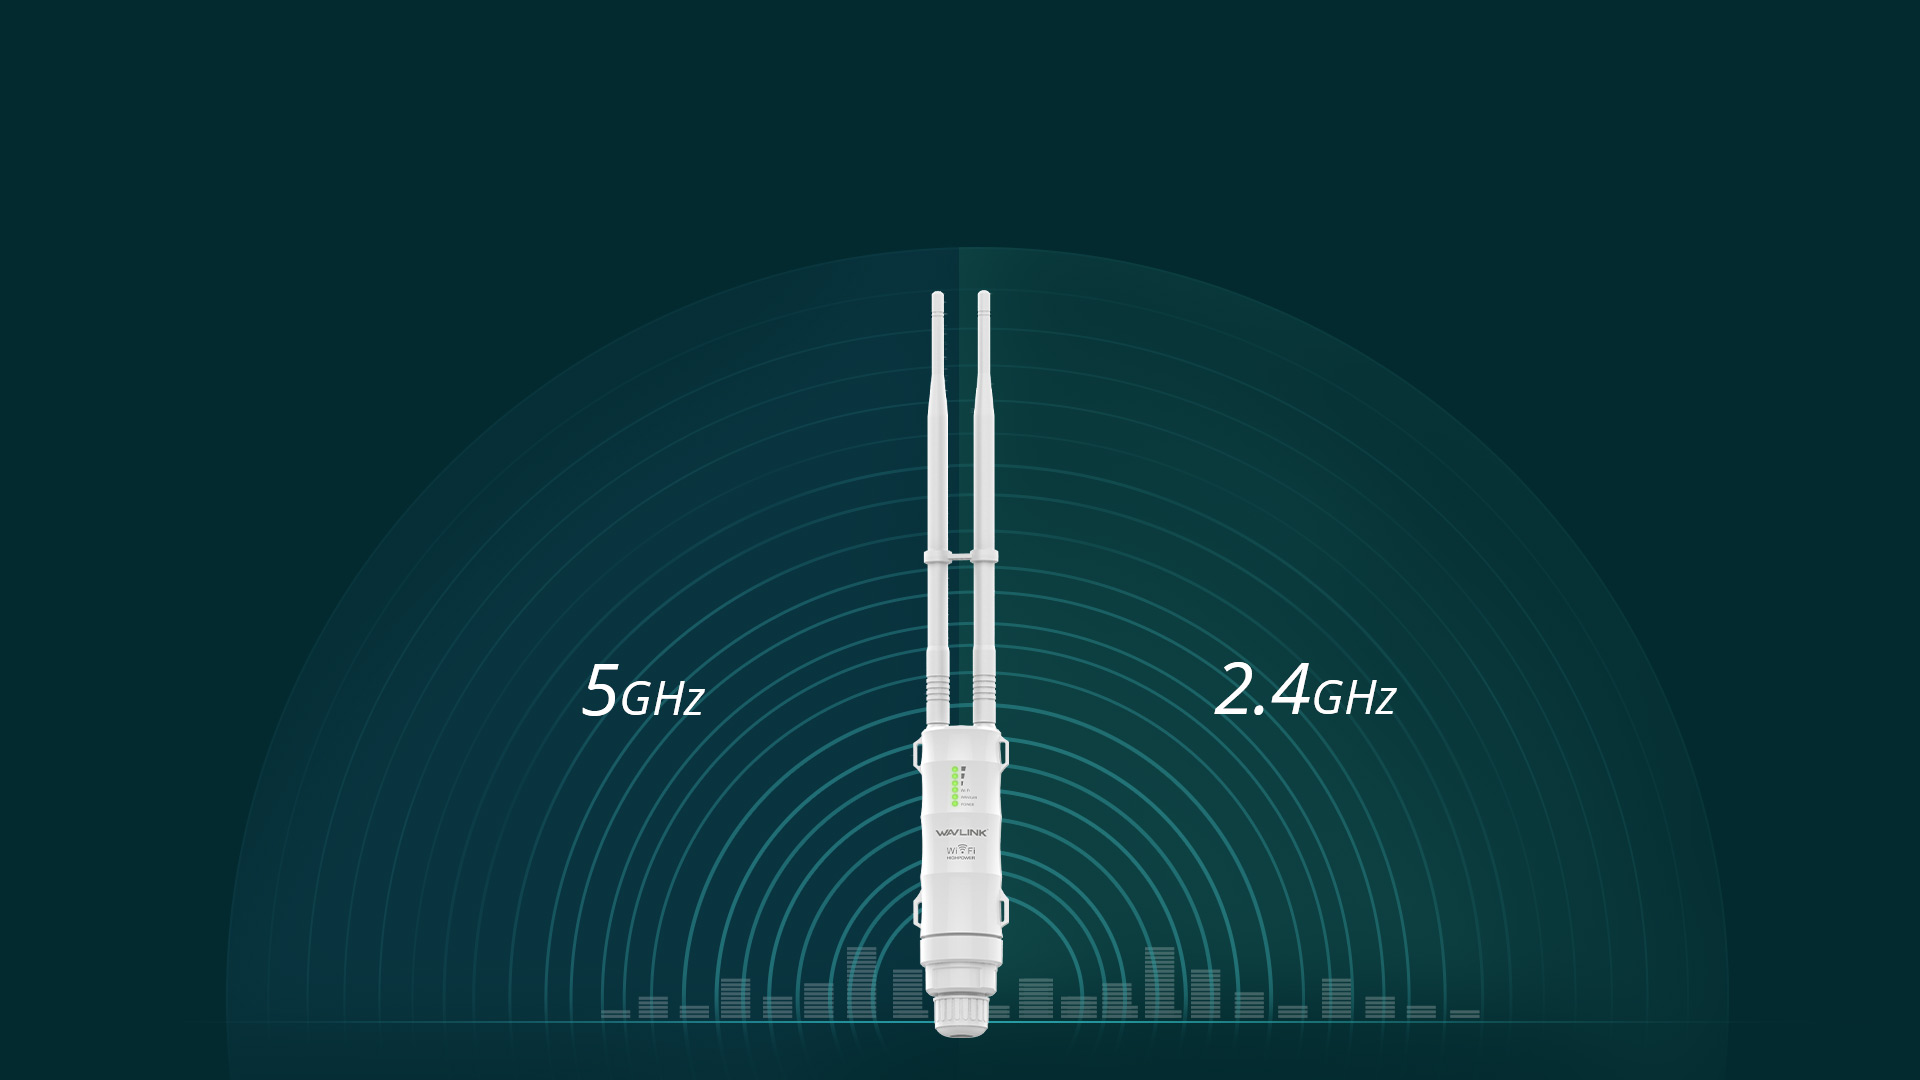 WAVLINK AC600 Dual-band High Power Outdoor Wireless AP/Range Extender/Router with PoE WL-WN570HA1 7